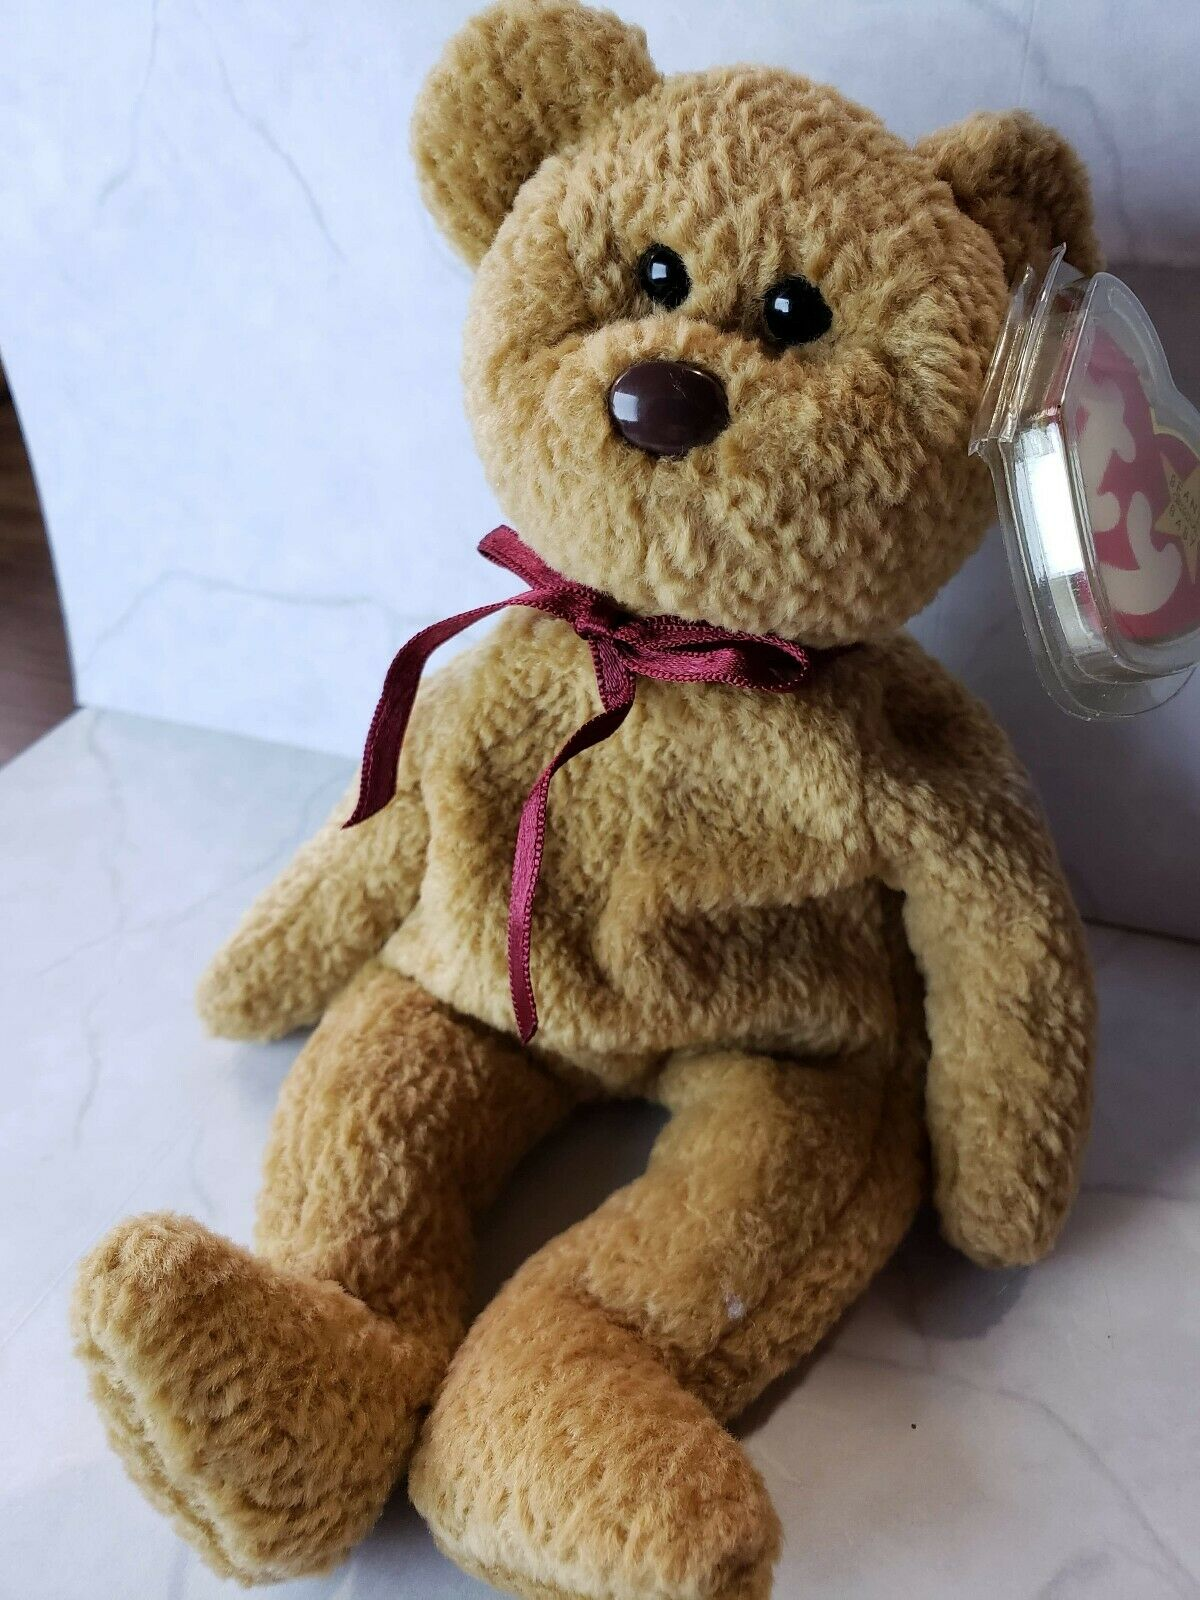 RARE TY BEANIE BABY CURLY BEAR RETIRED WITH TAG 1993 1993 1993 1996 9ea43f